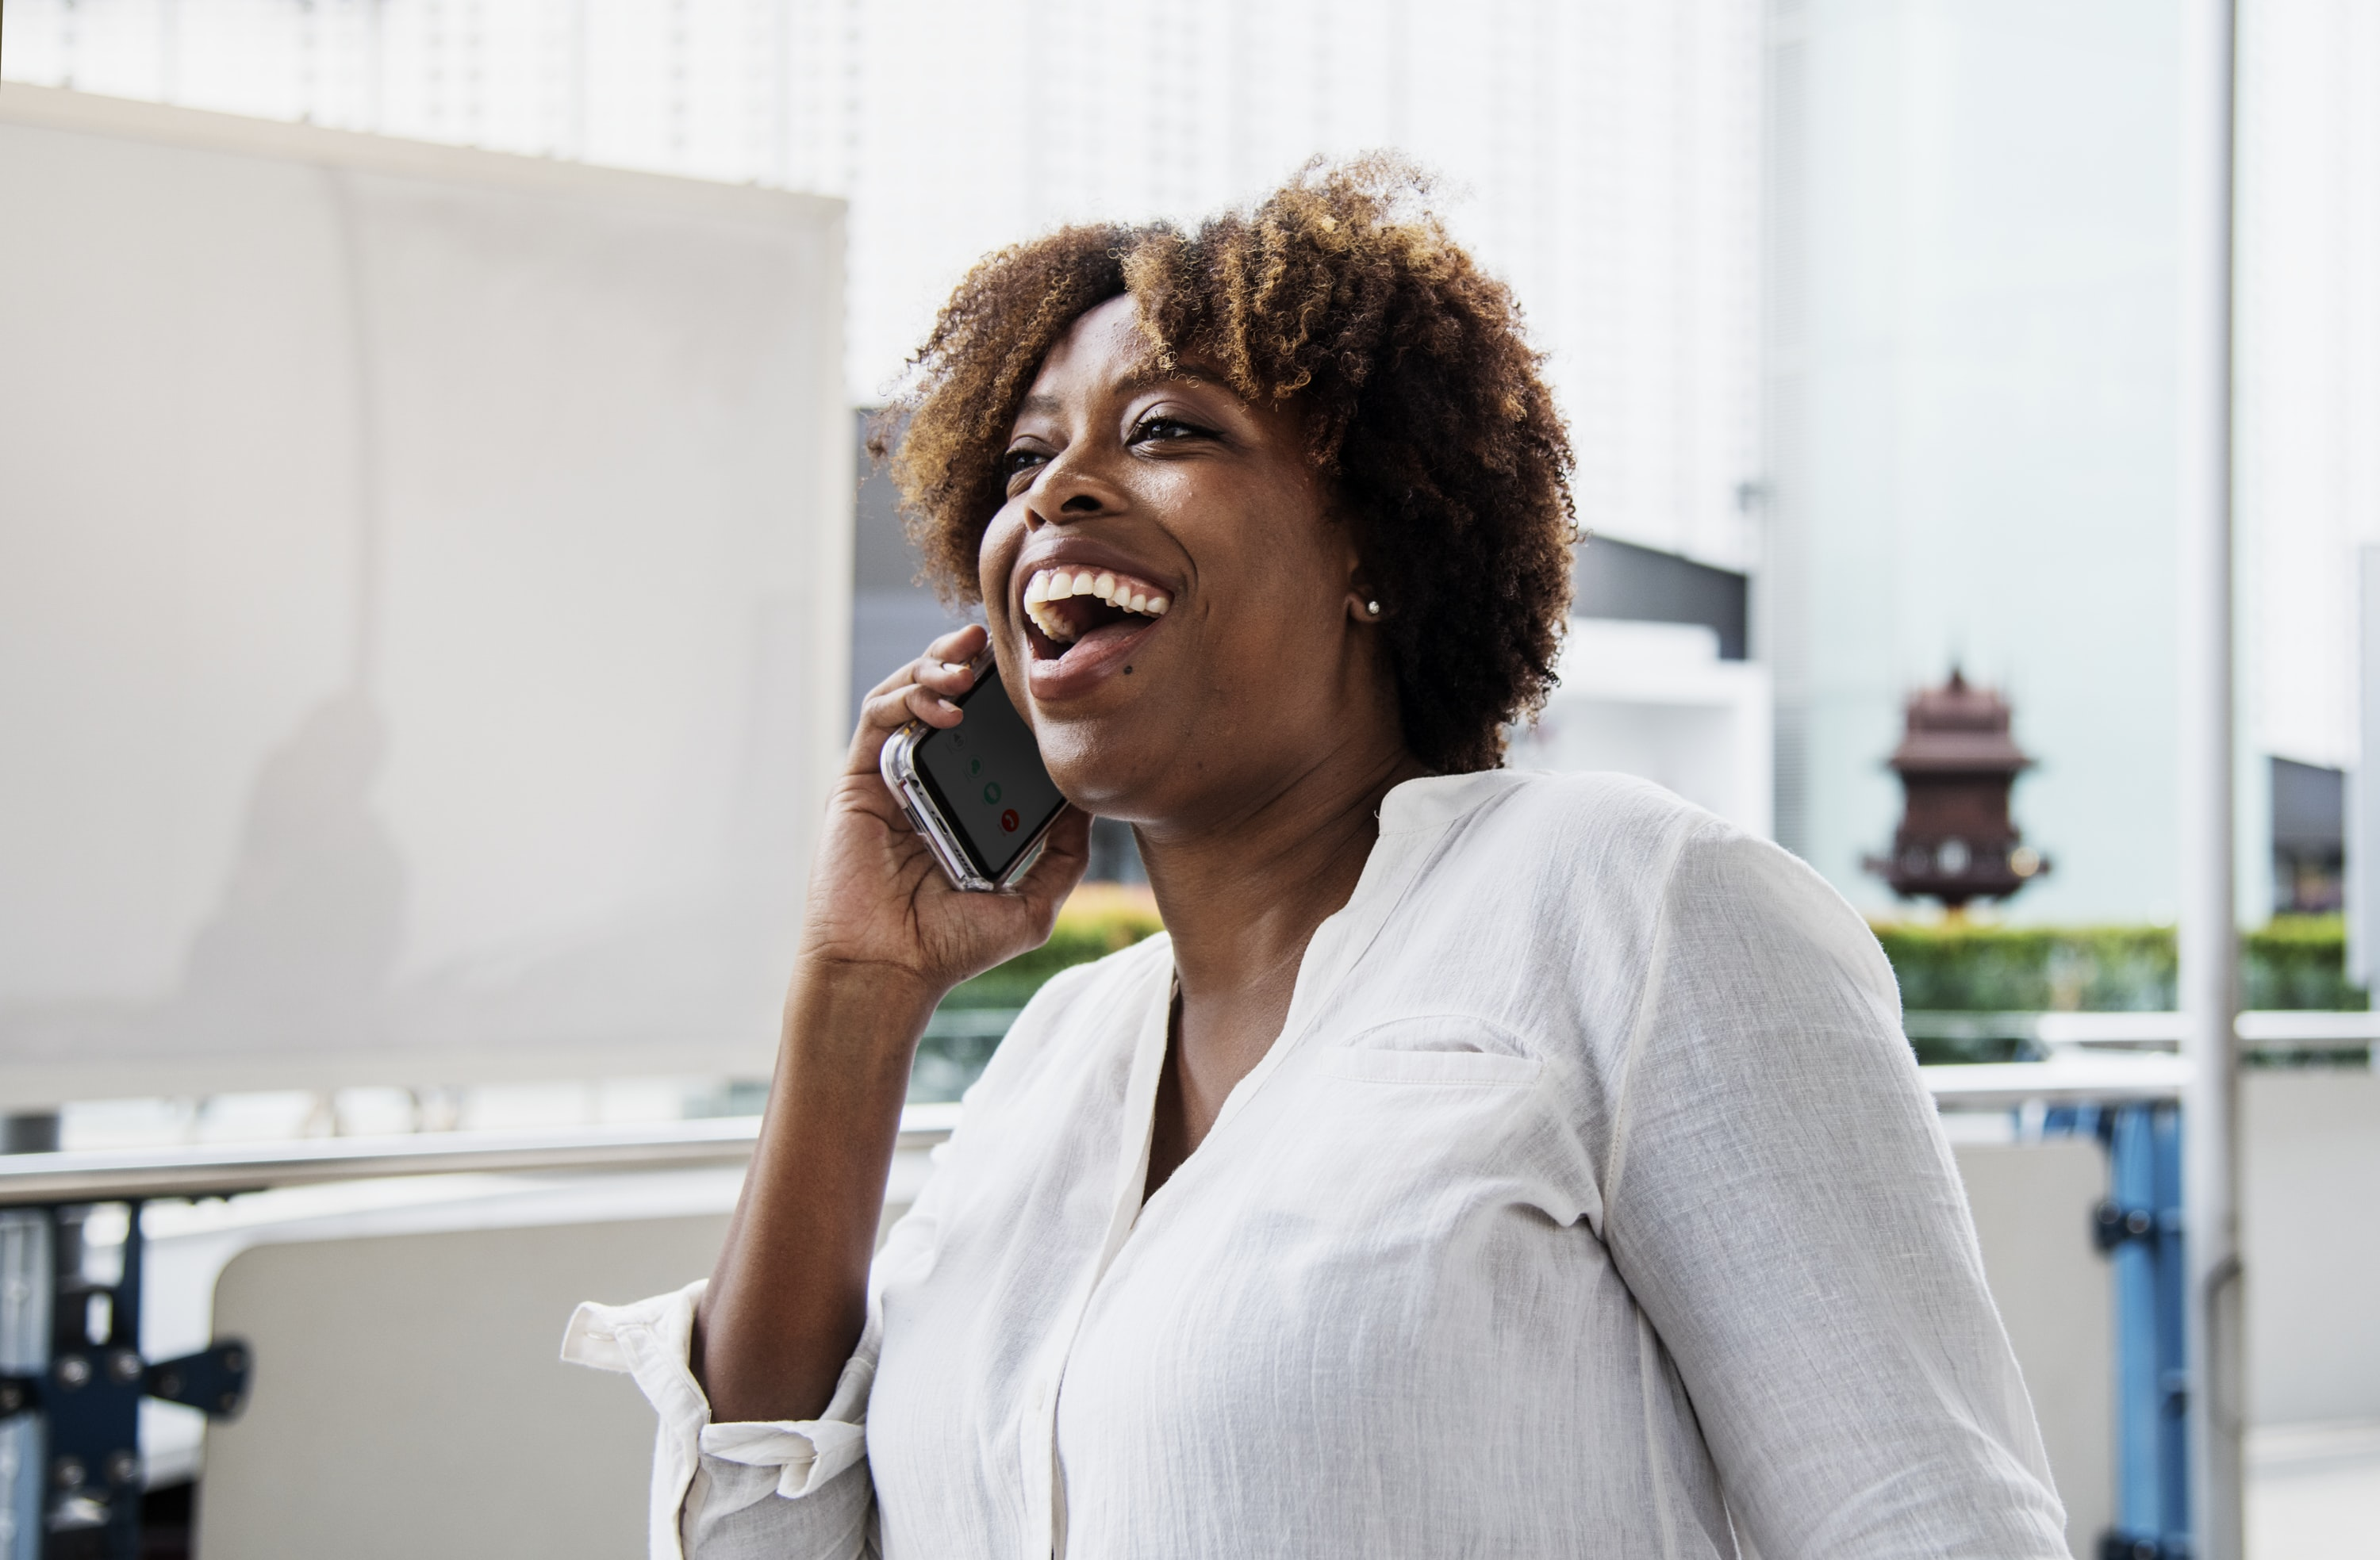 woman laughing while on call